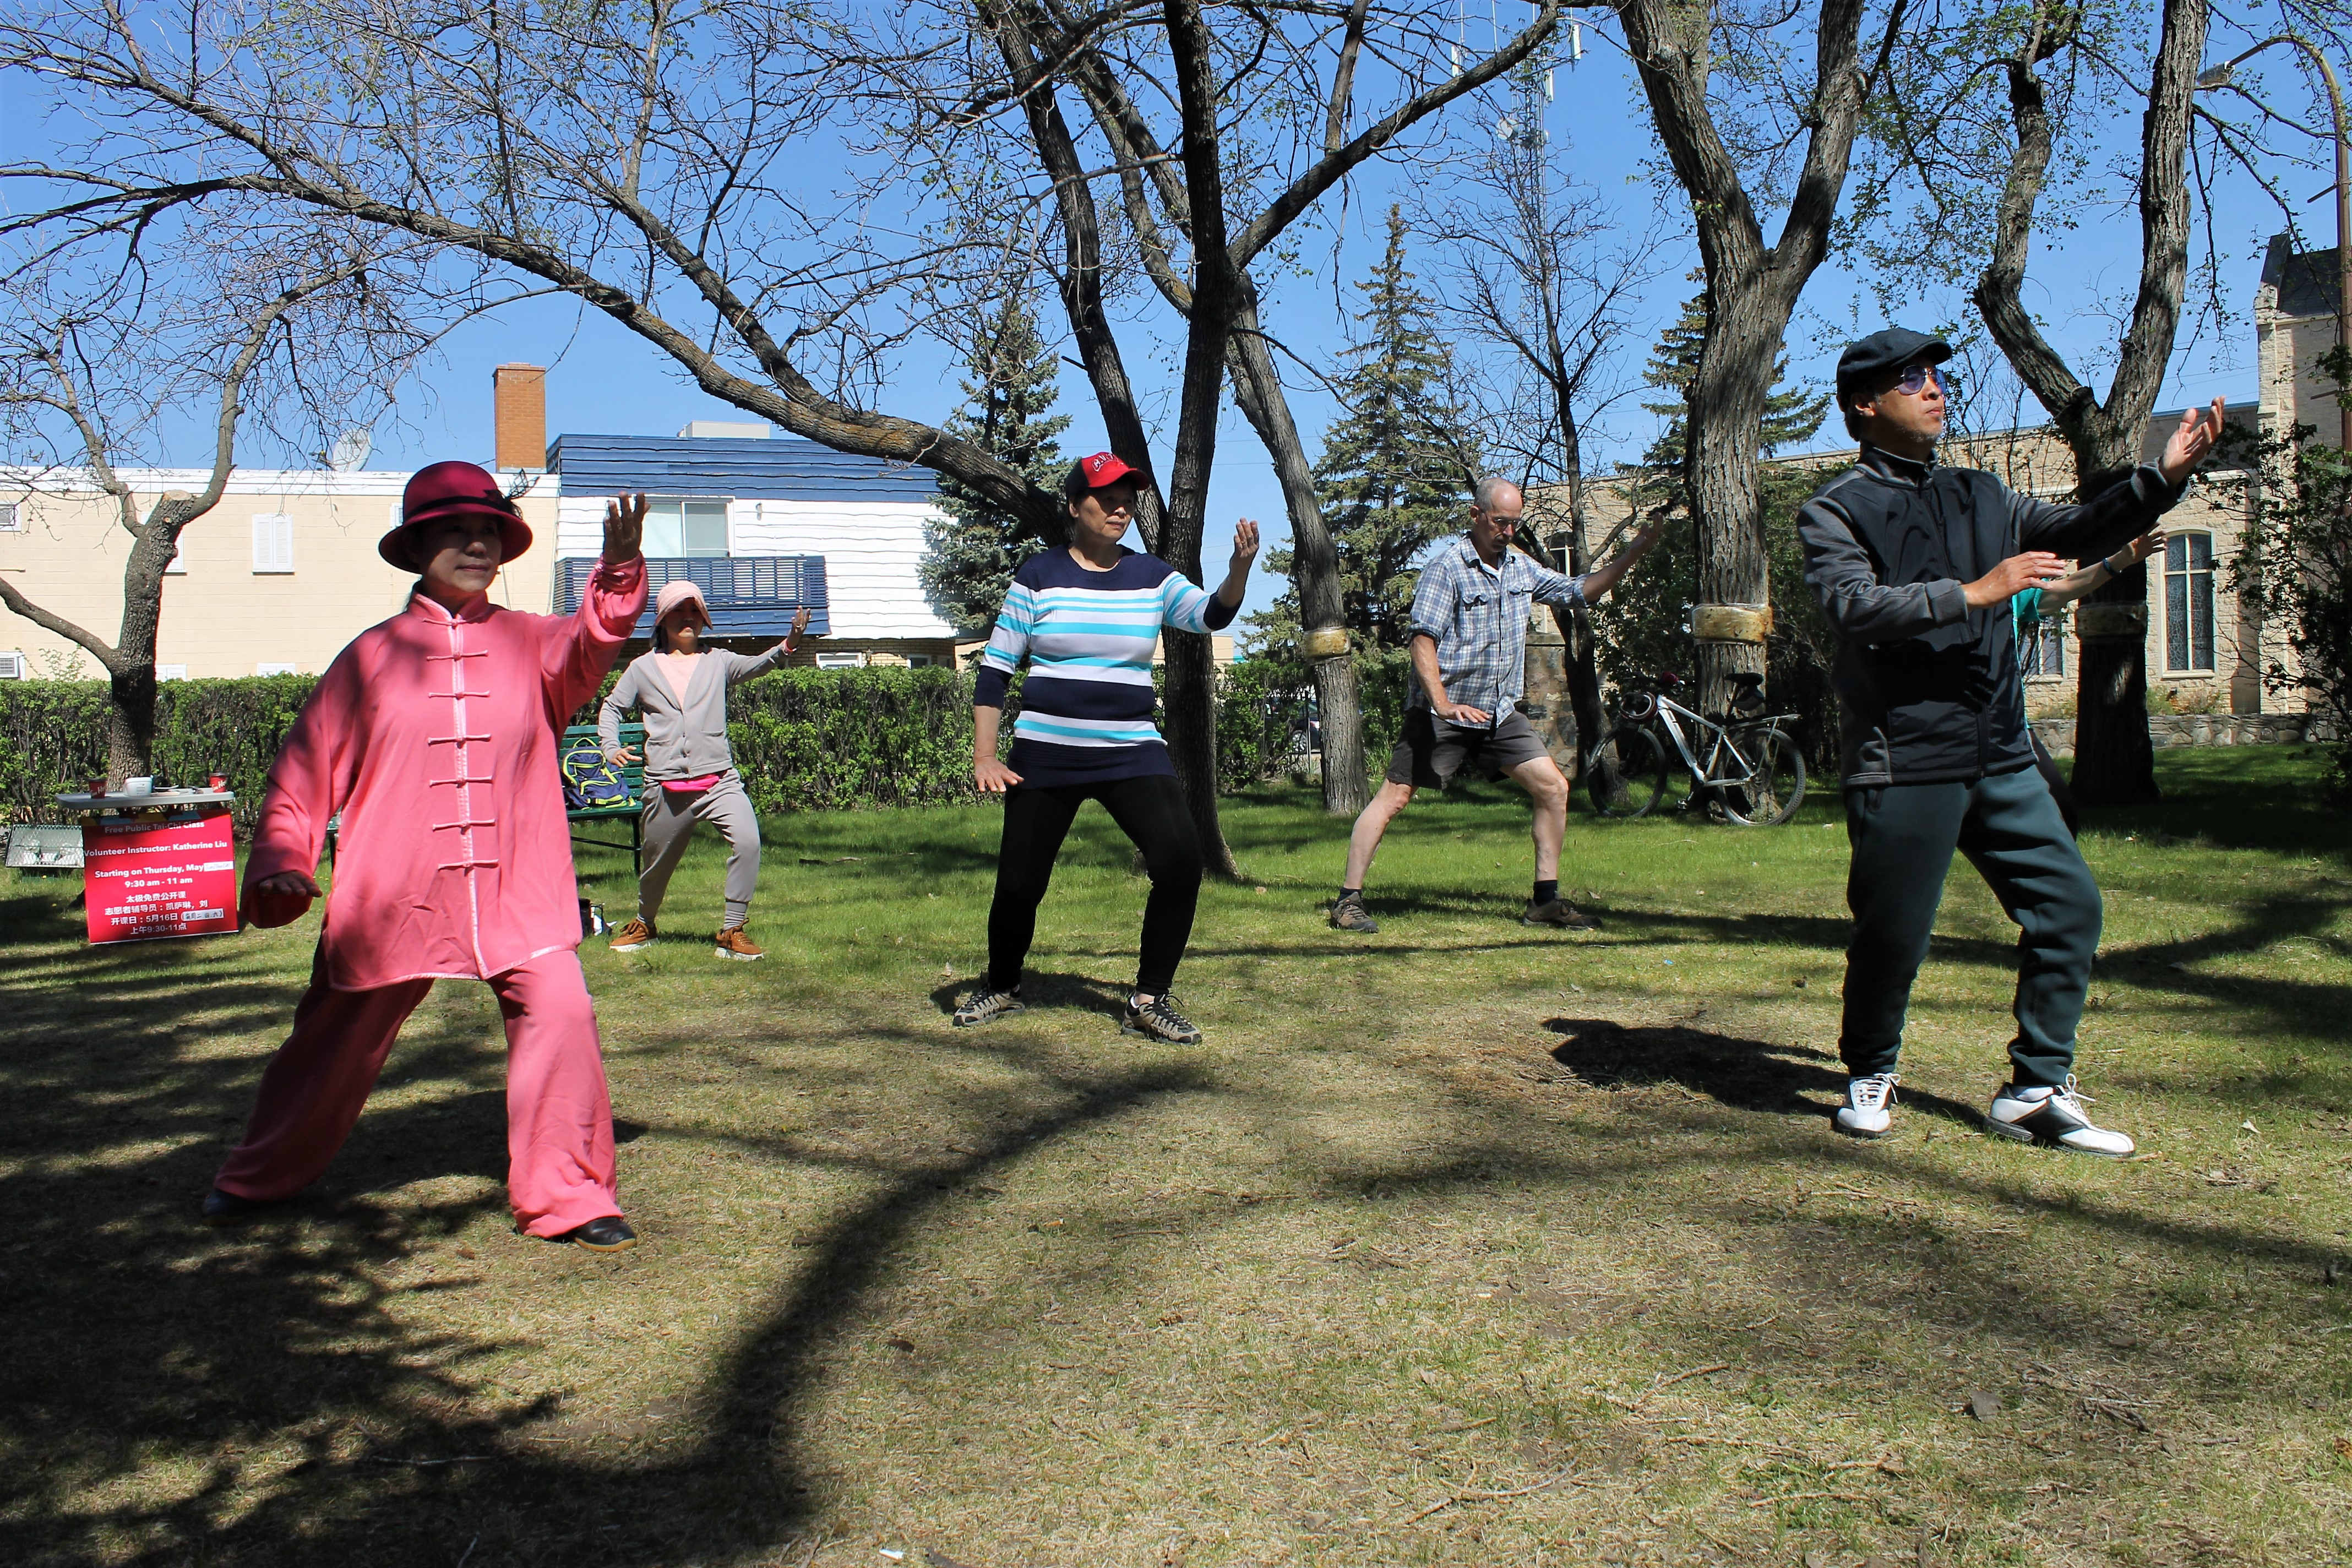 Morning tai chi in the park meant for everyone - MooseJawToday com